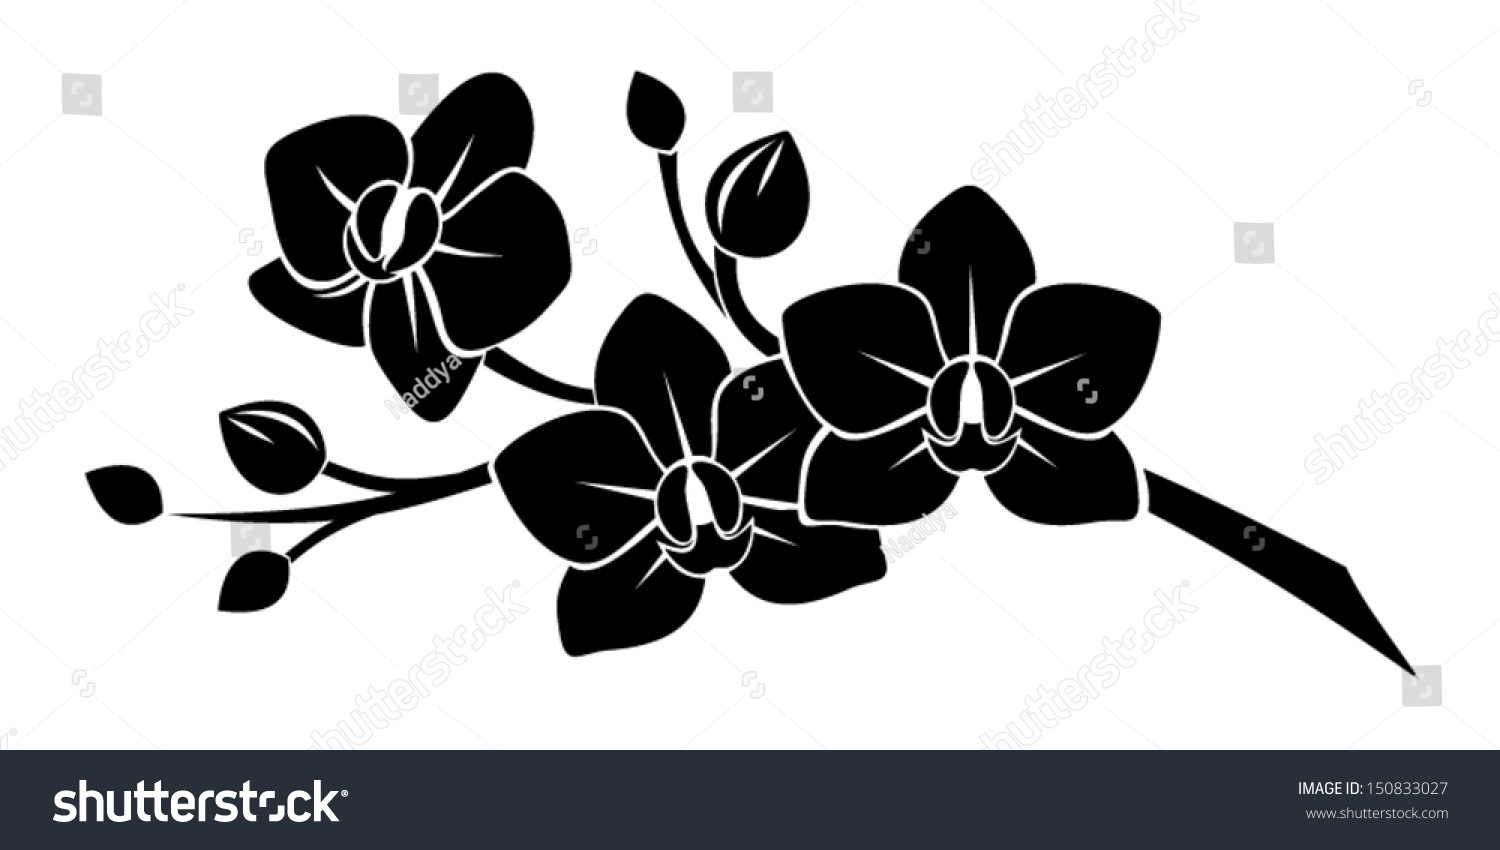 Black silhouette orchid flowers vector illustration image for Mural hitam putih keren